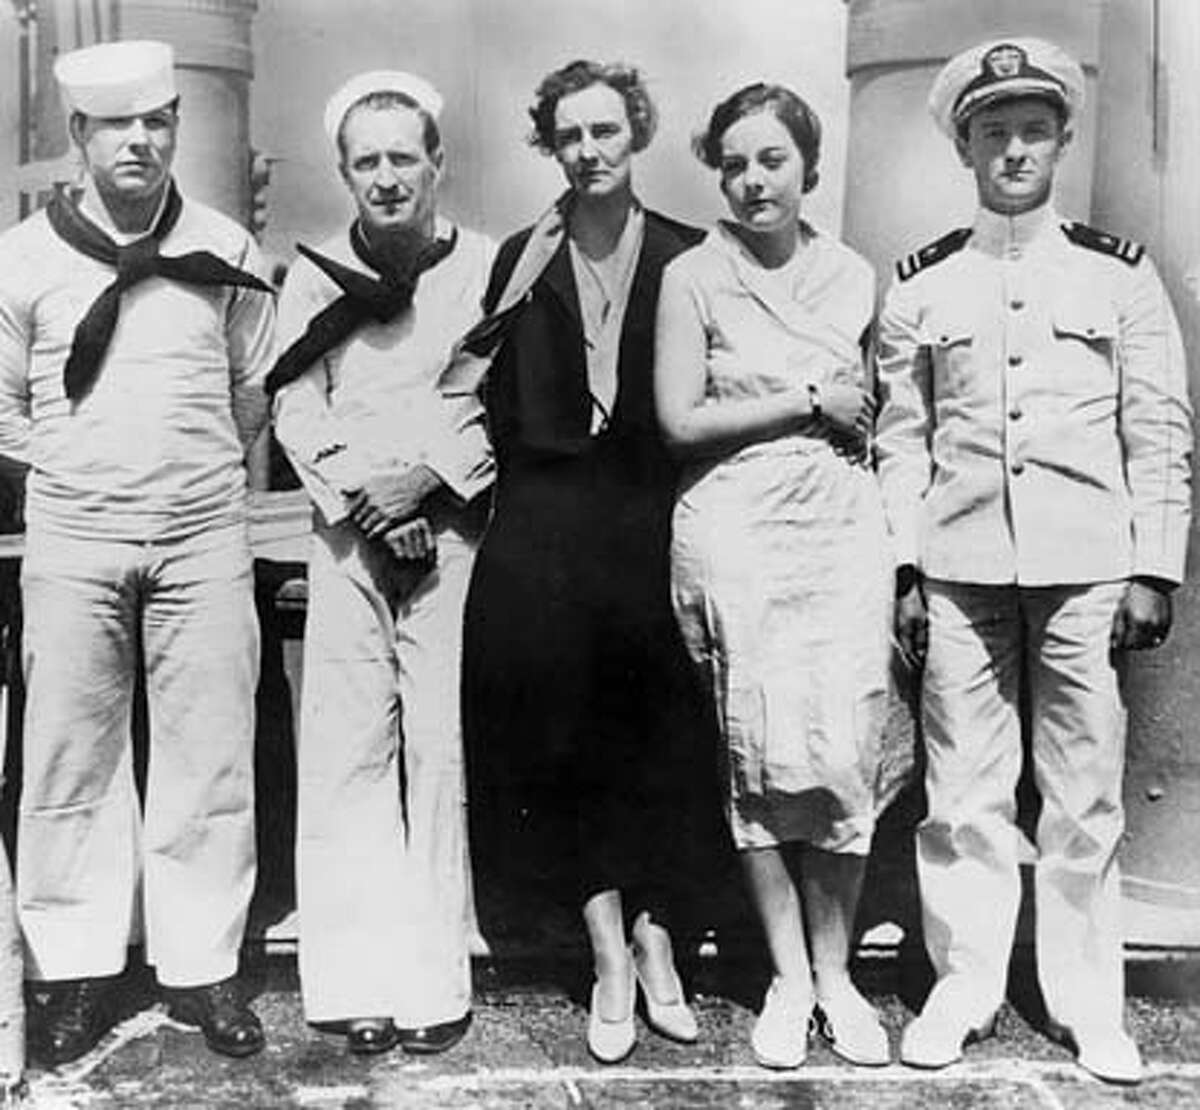 The suspects in the murder of Joseph Kahahwai Jr., aboard the U.S.S. Alton where they were confined during their murder trial: L to R, Edward Lord, Albert